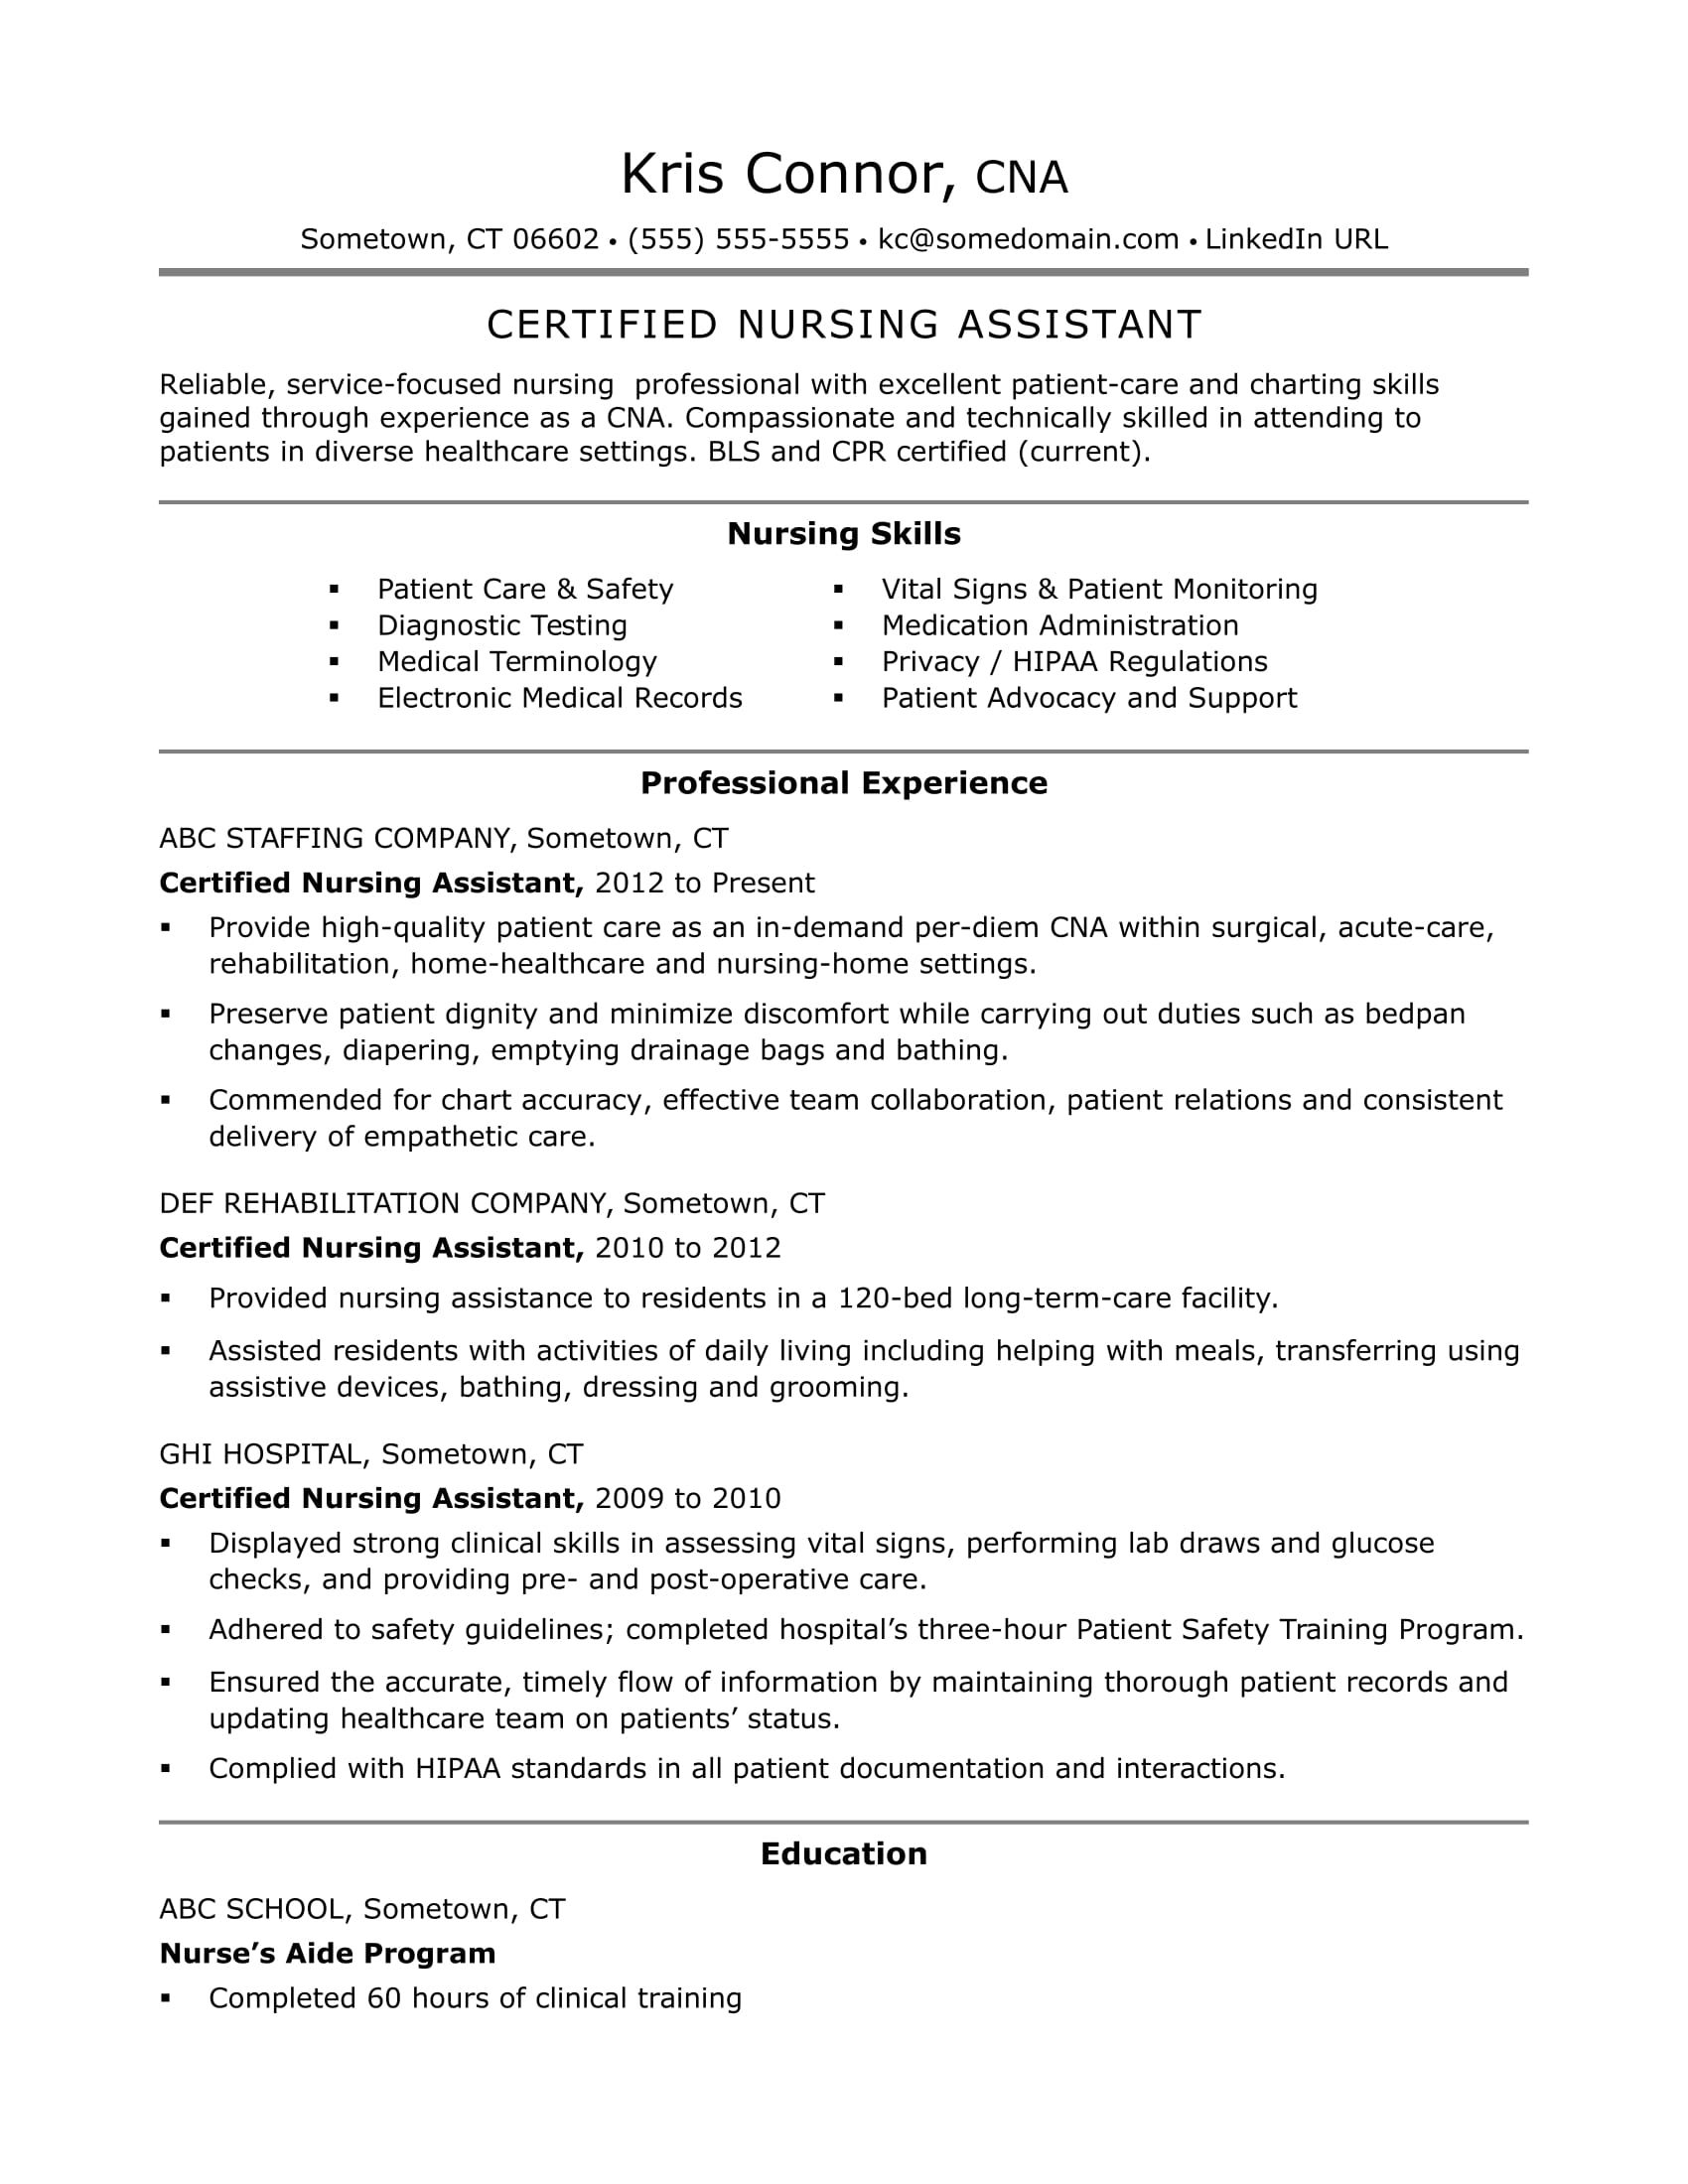 cna resume example - Resume Examples Skills And Attributes